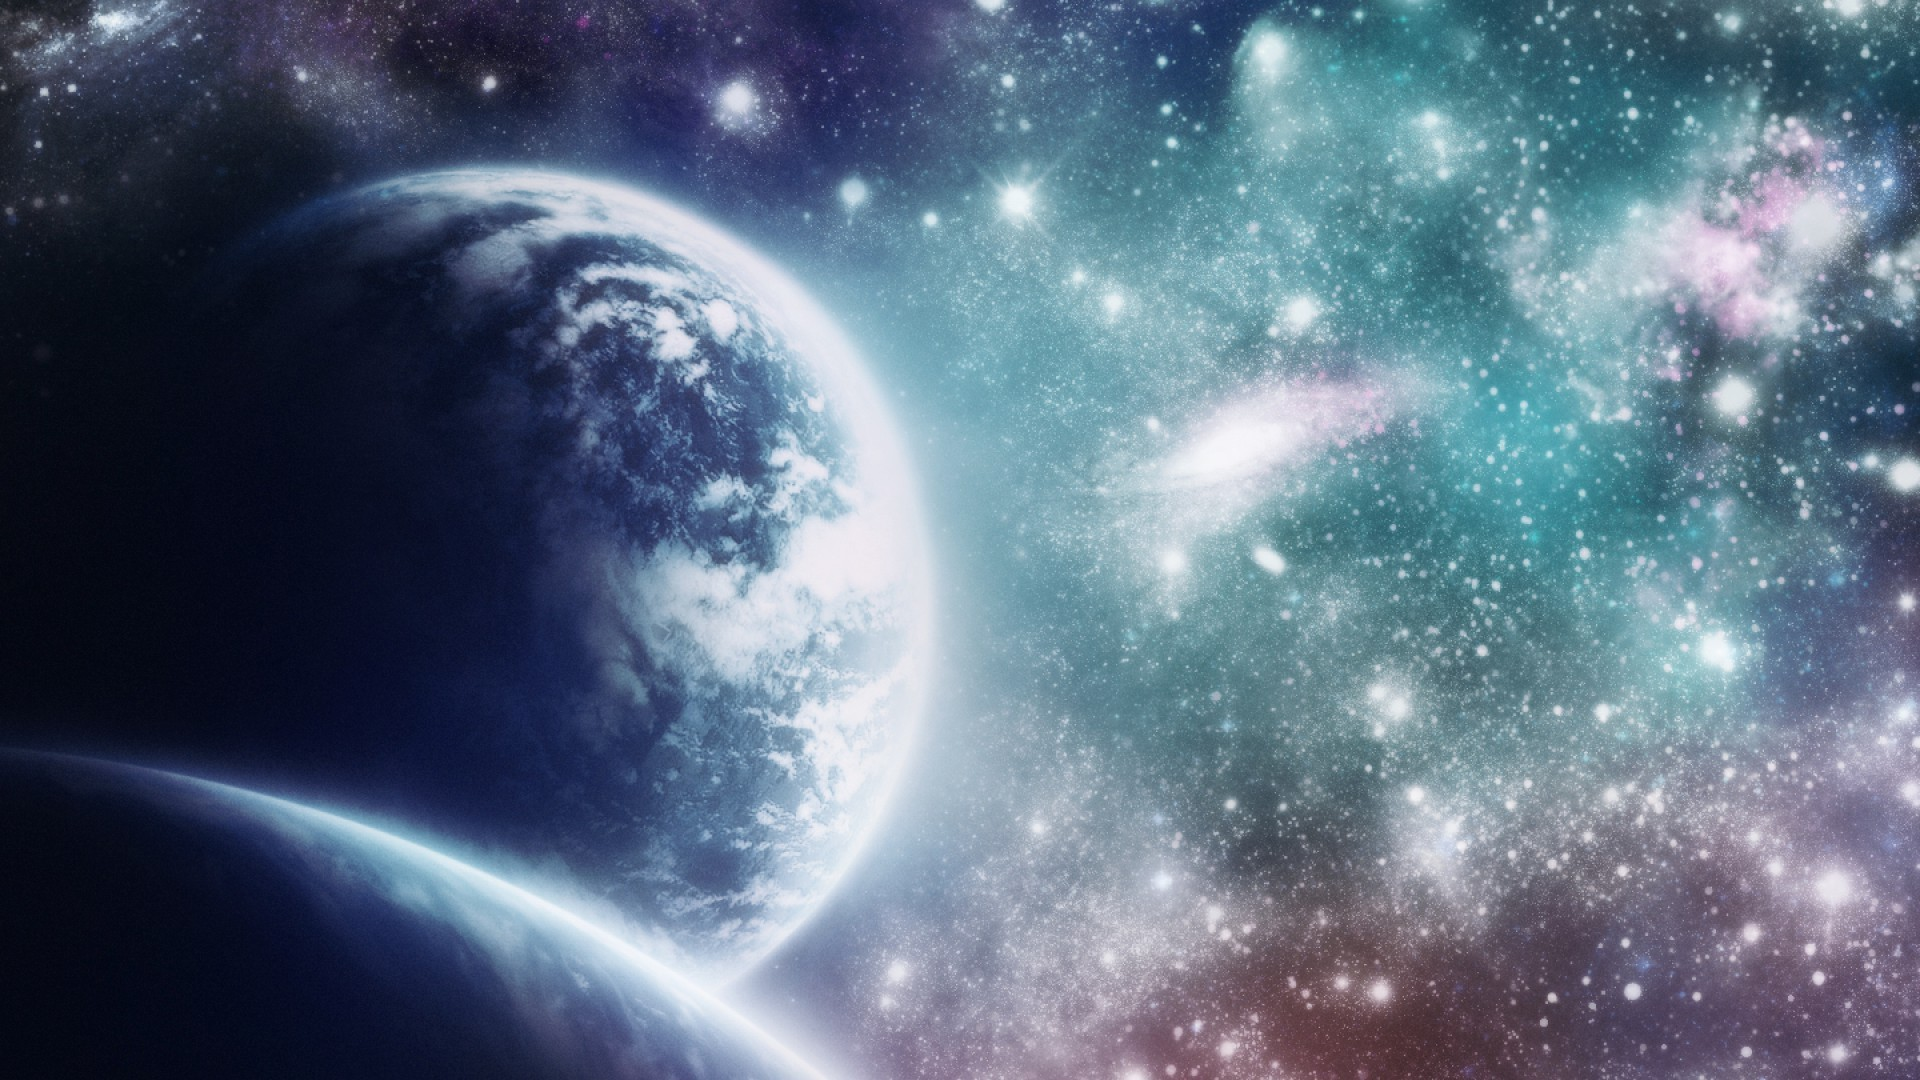 44 hd real space wallpapers 1080p 183�� download free